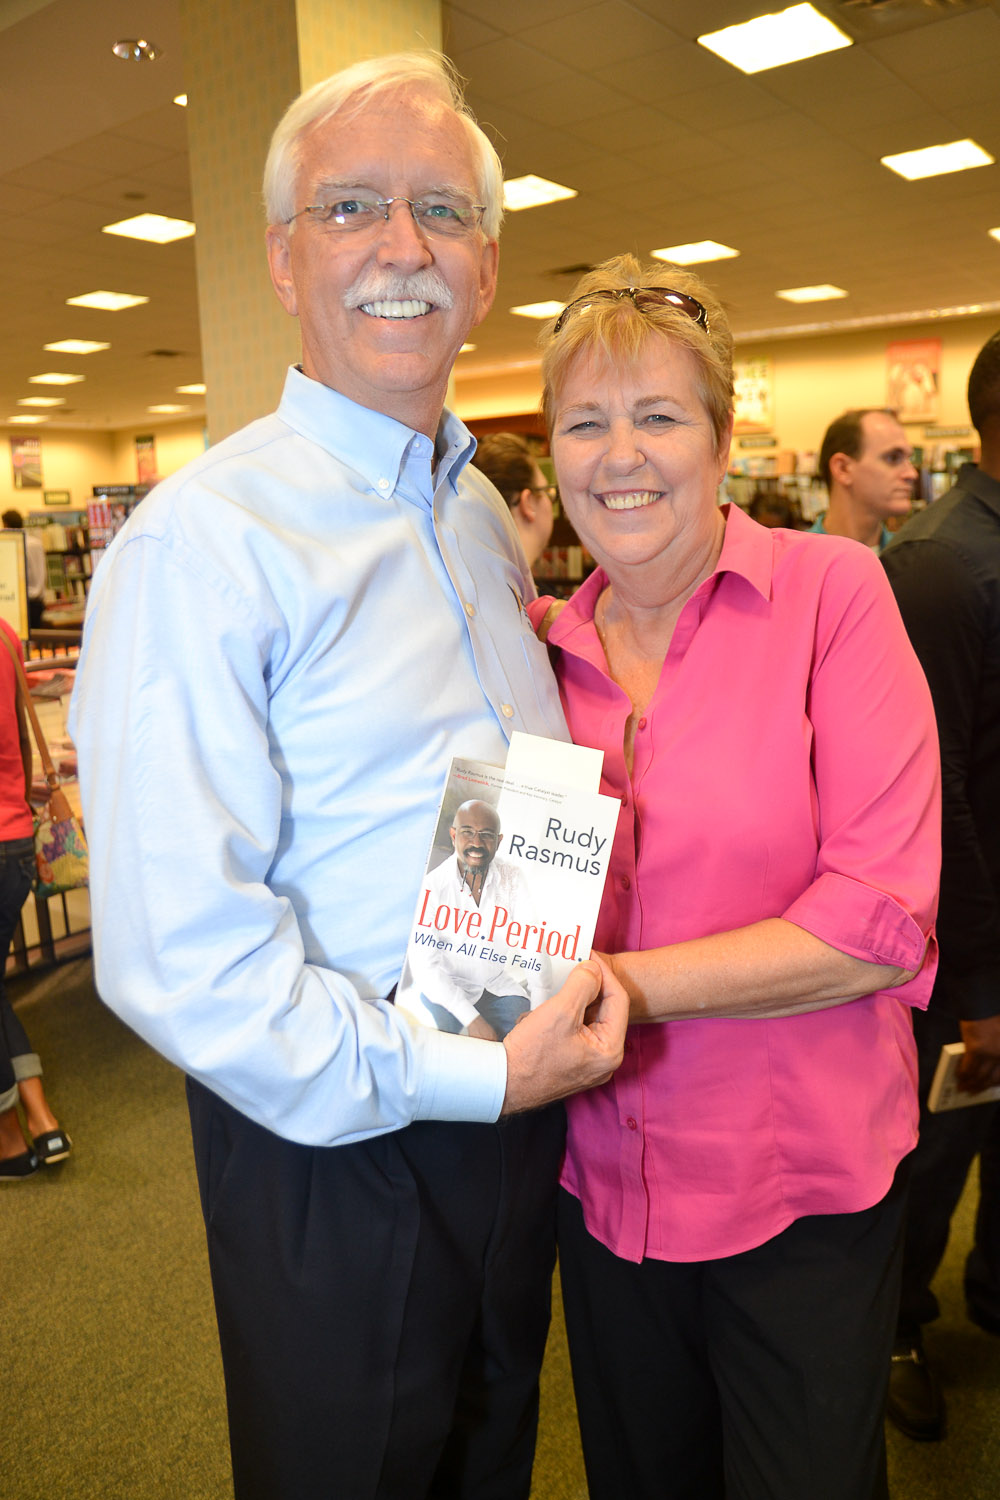 Paster Rudy book signing -0273.jpg